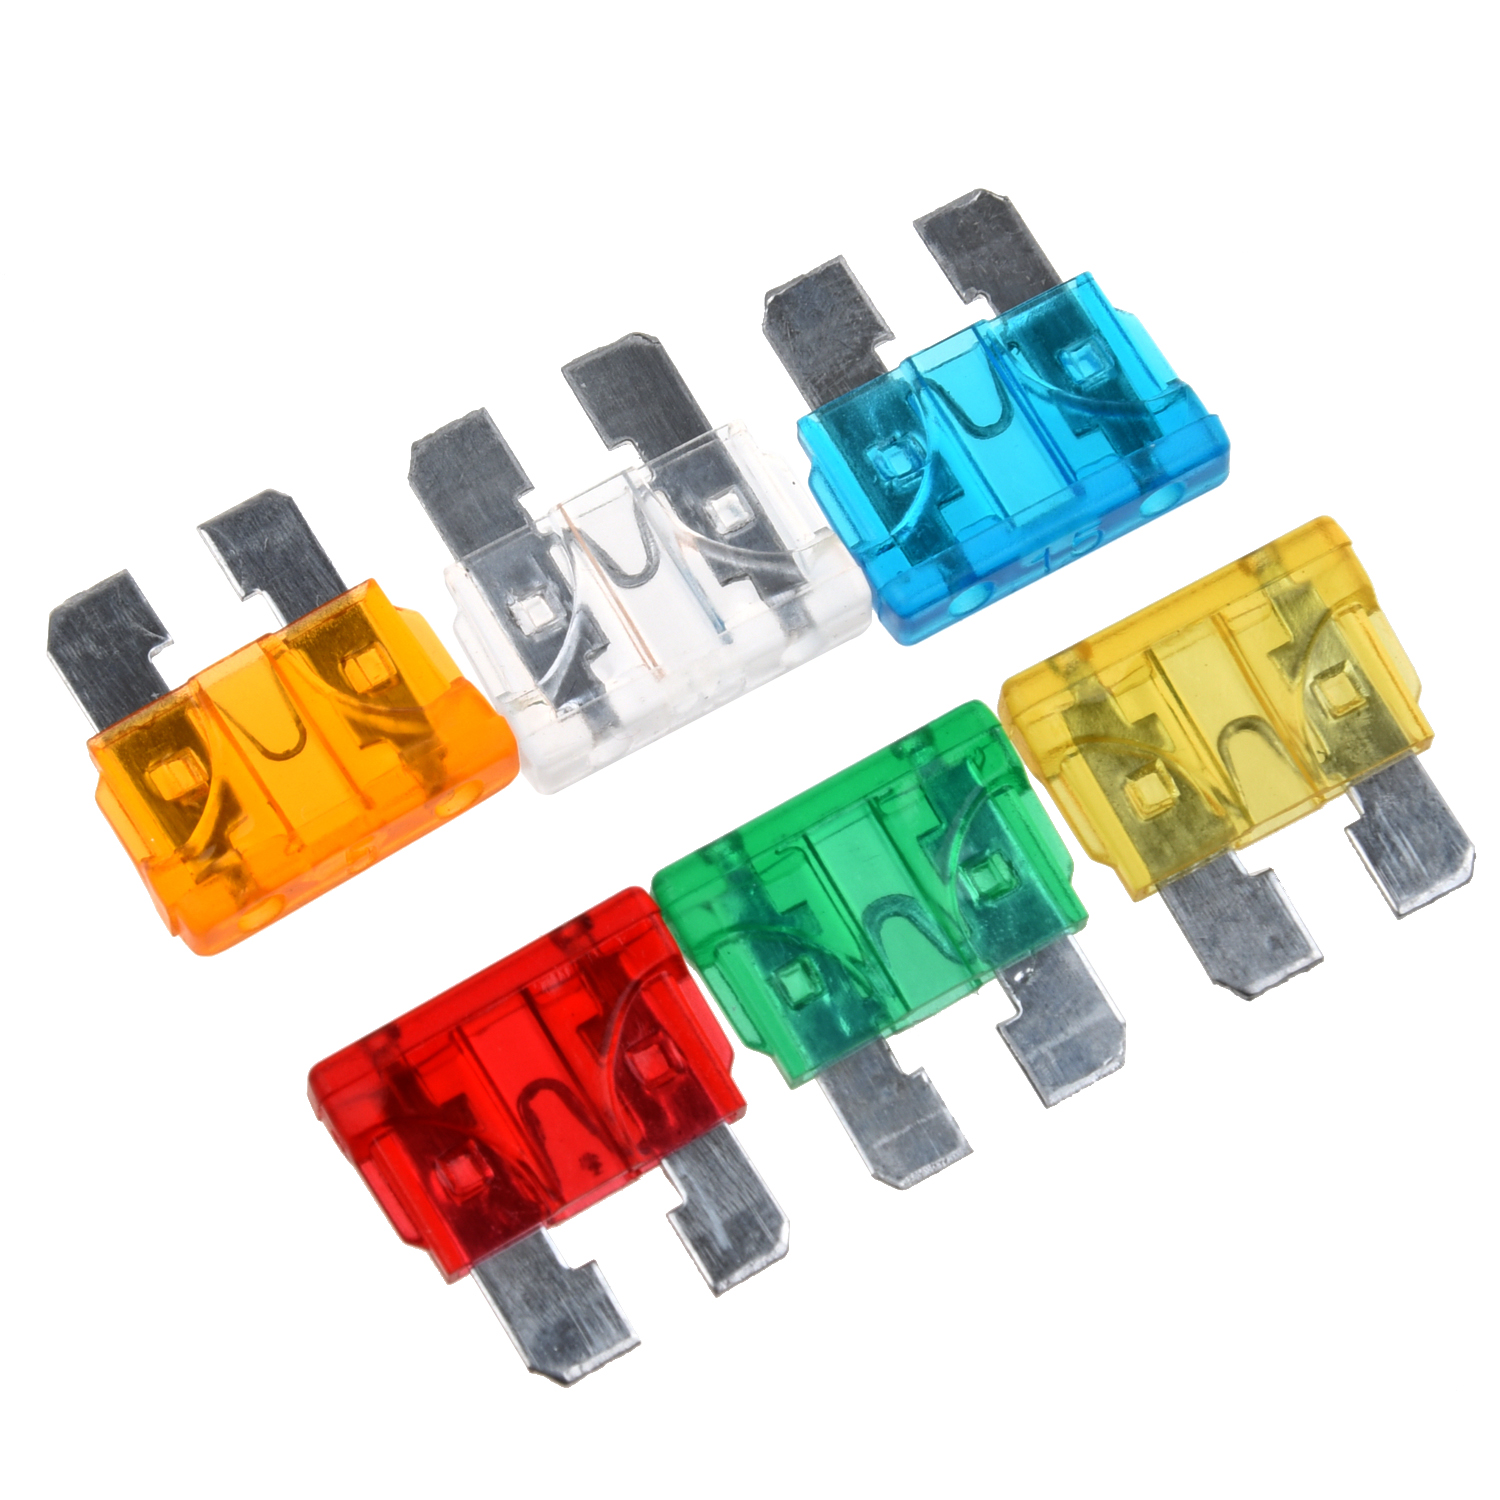 Hot Sale 30pcs Standard Auto Blade Fuse For Car 5 10 15 20